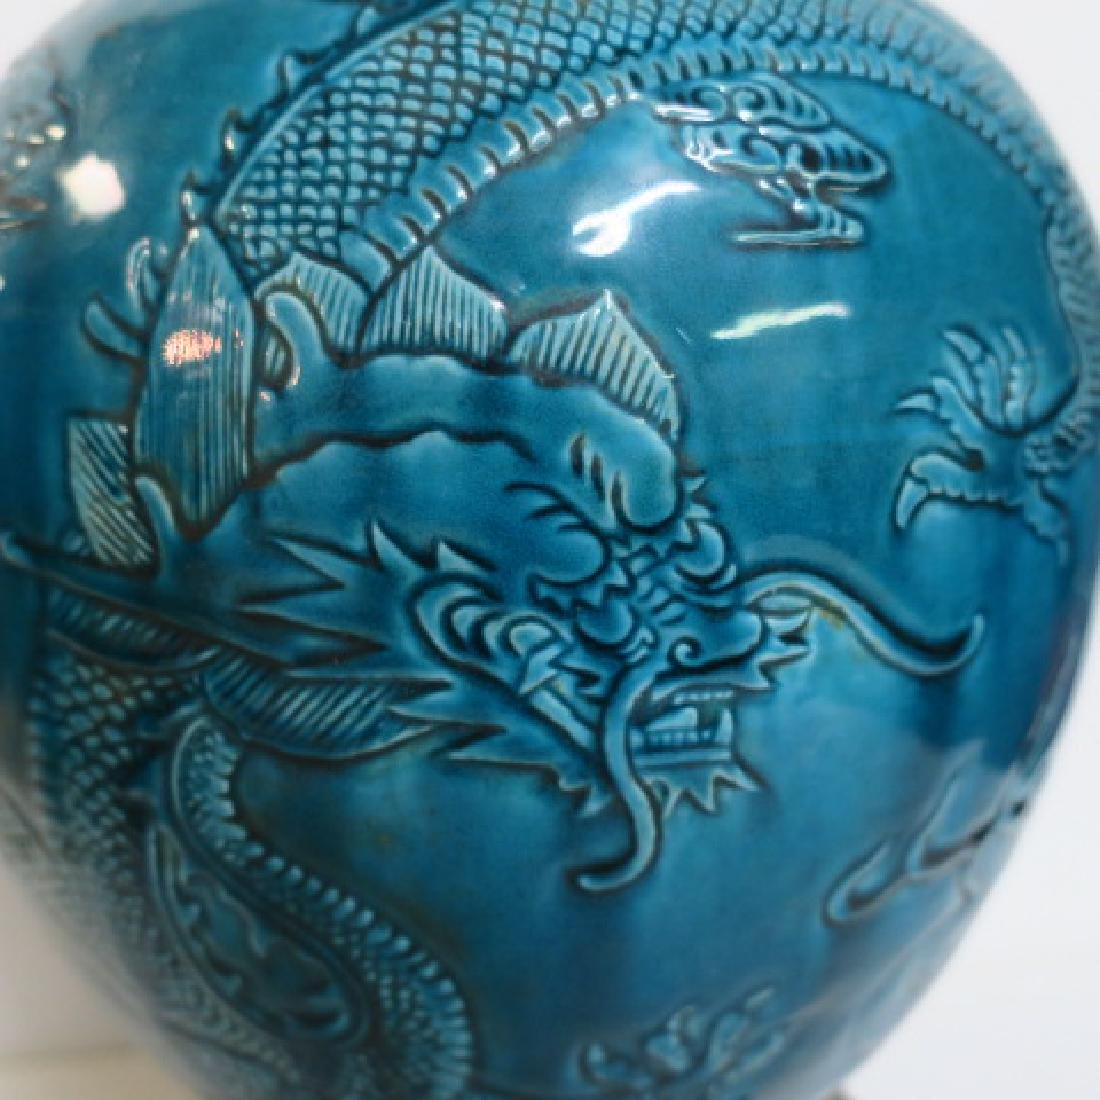 Two French Porcelain Turquoise Asian Style Dragon Jars - 3